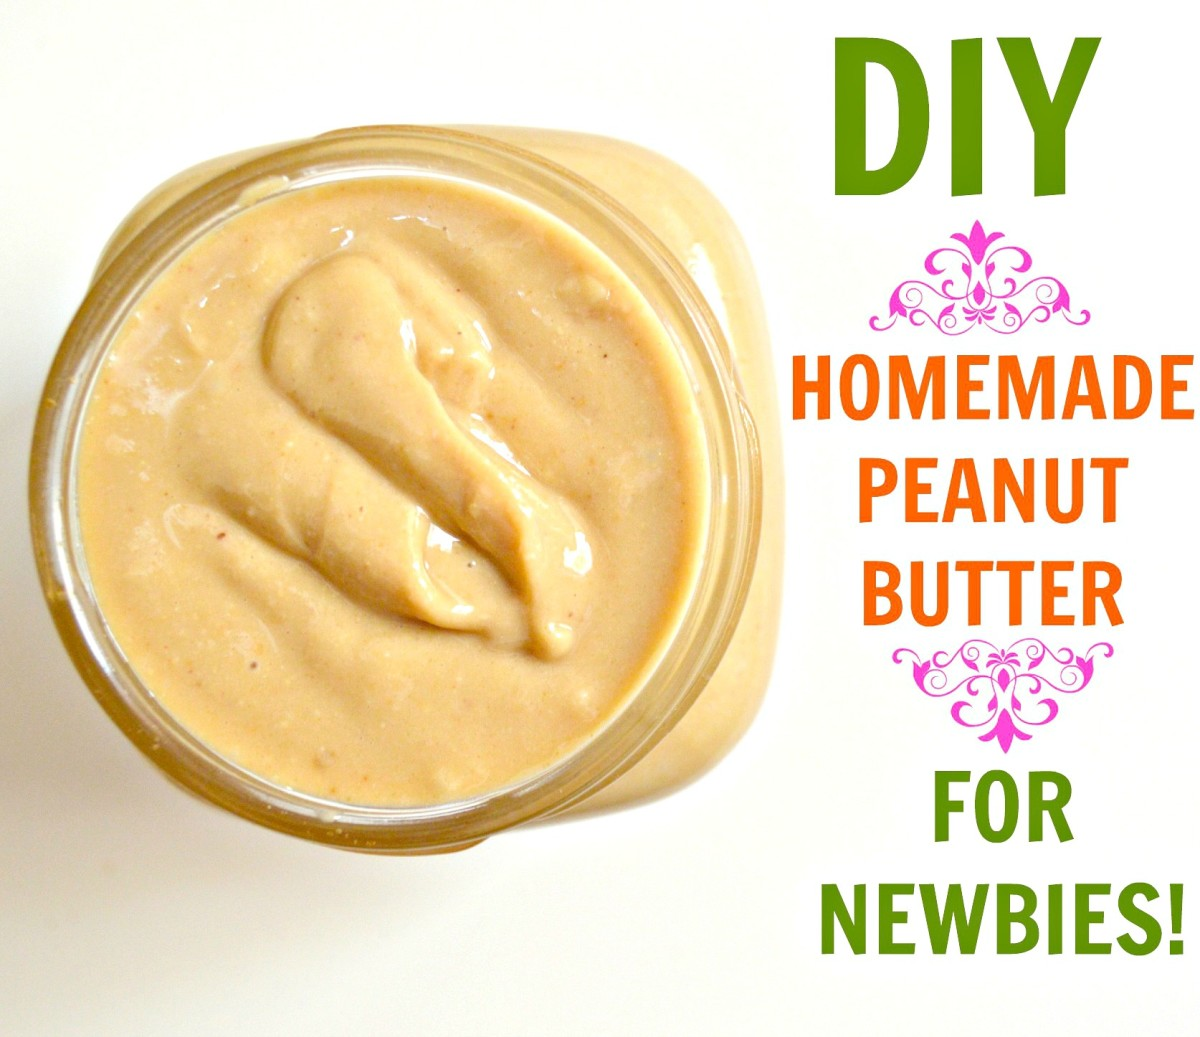 Easy DIY: How to make Peanut Butter at Home | Delishably